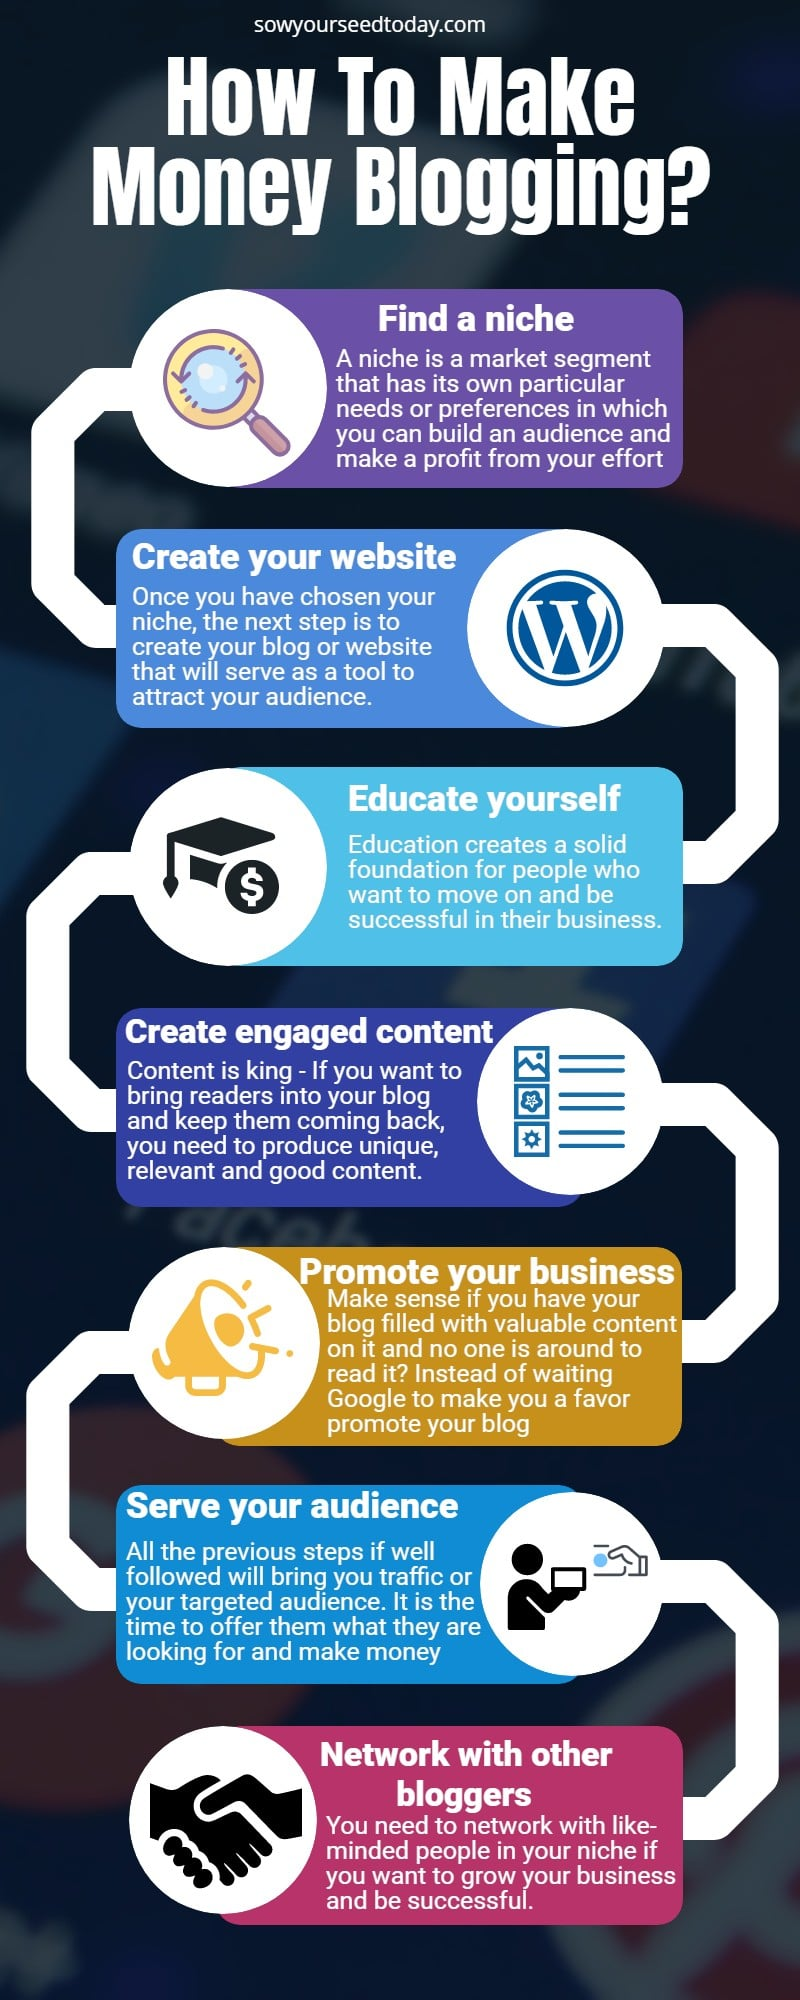 How to make money blogging infography explained the process